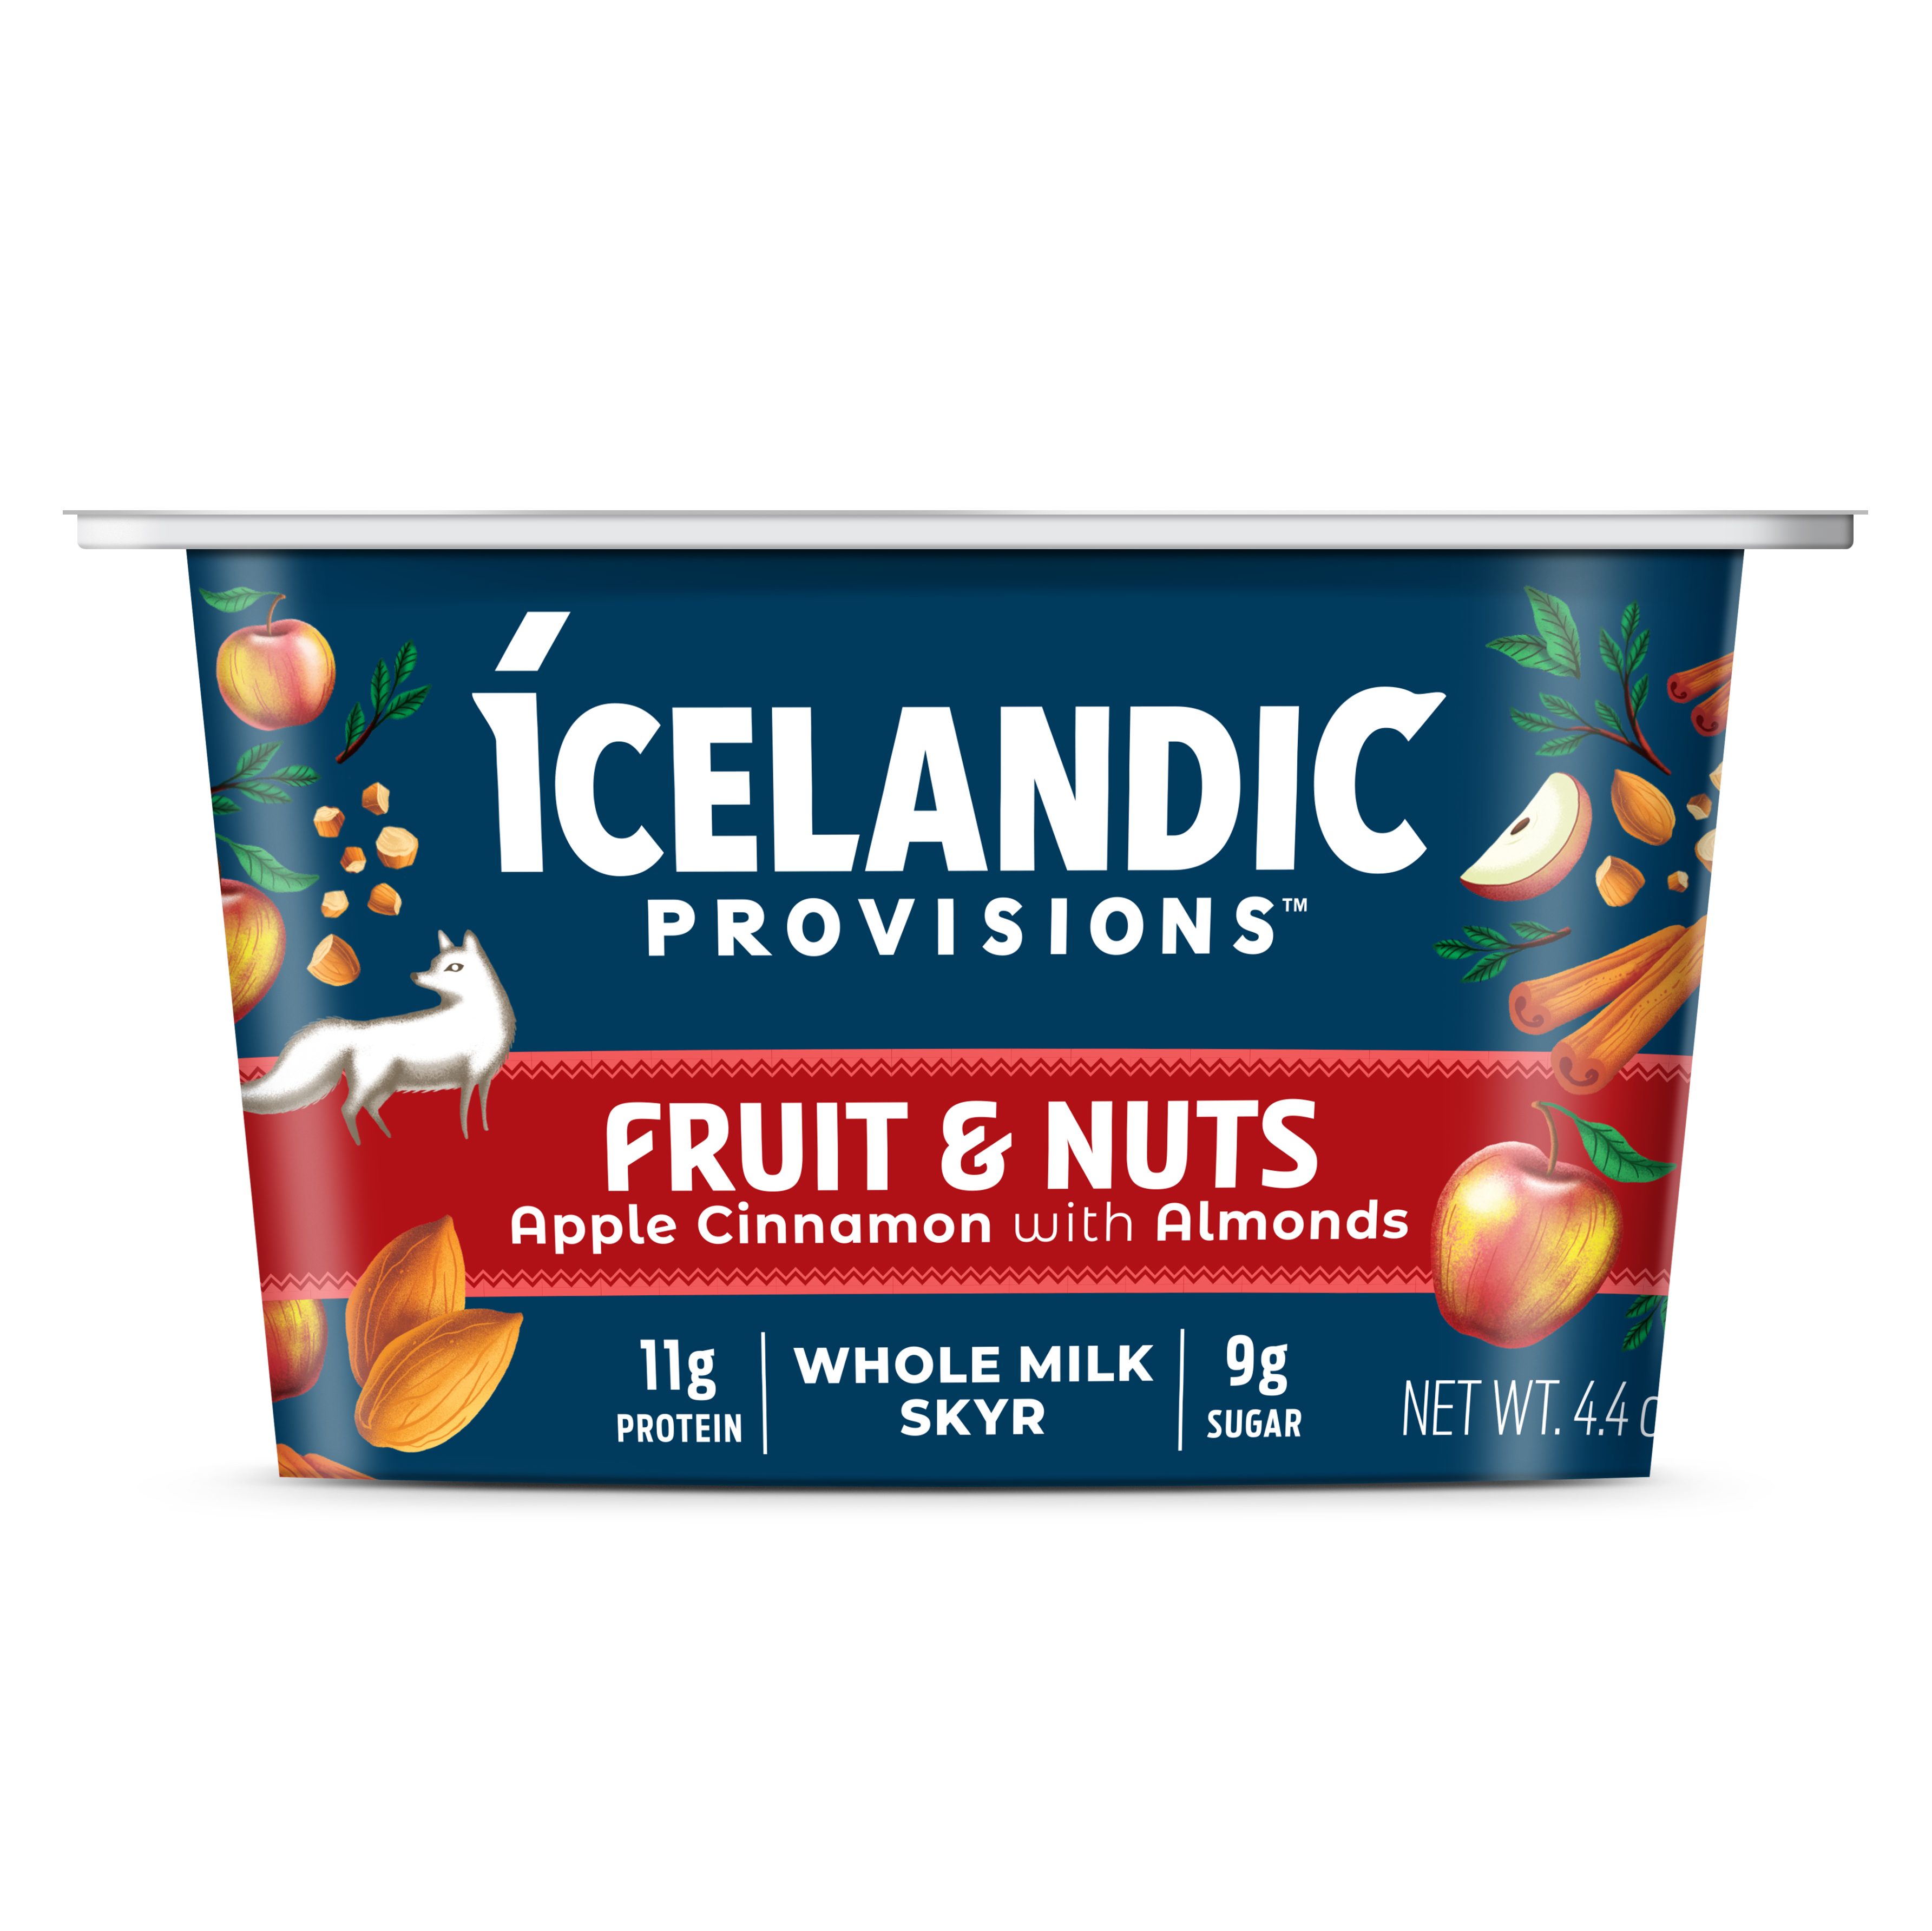 a container of Icelandic Provisions Fruit & Nuts Apple Cinnamon